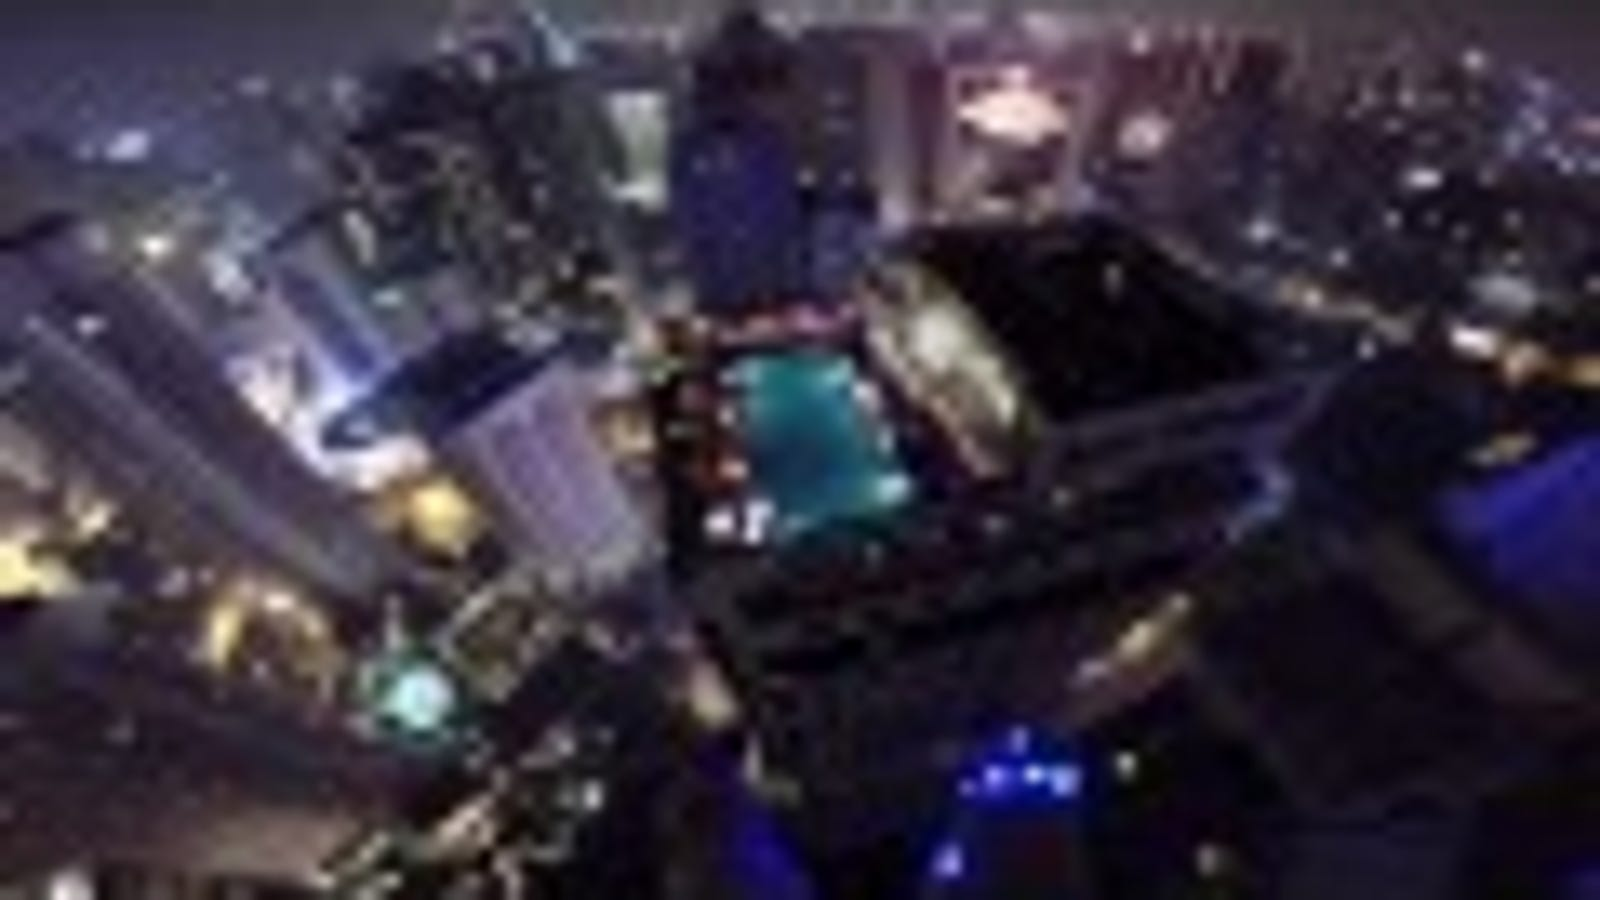 Watch This BASE Jumper Parachute Into a Rooftop Pool